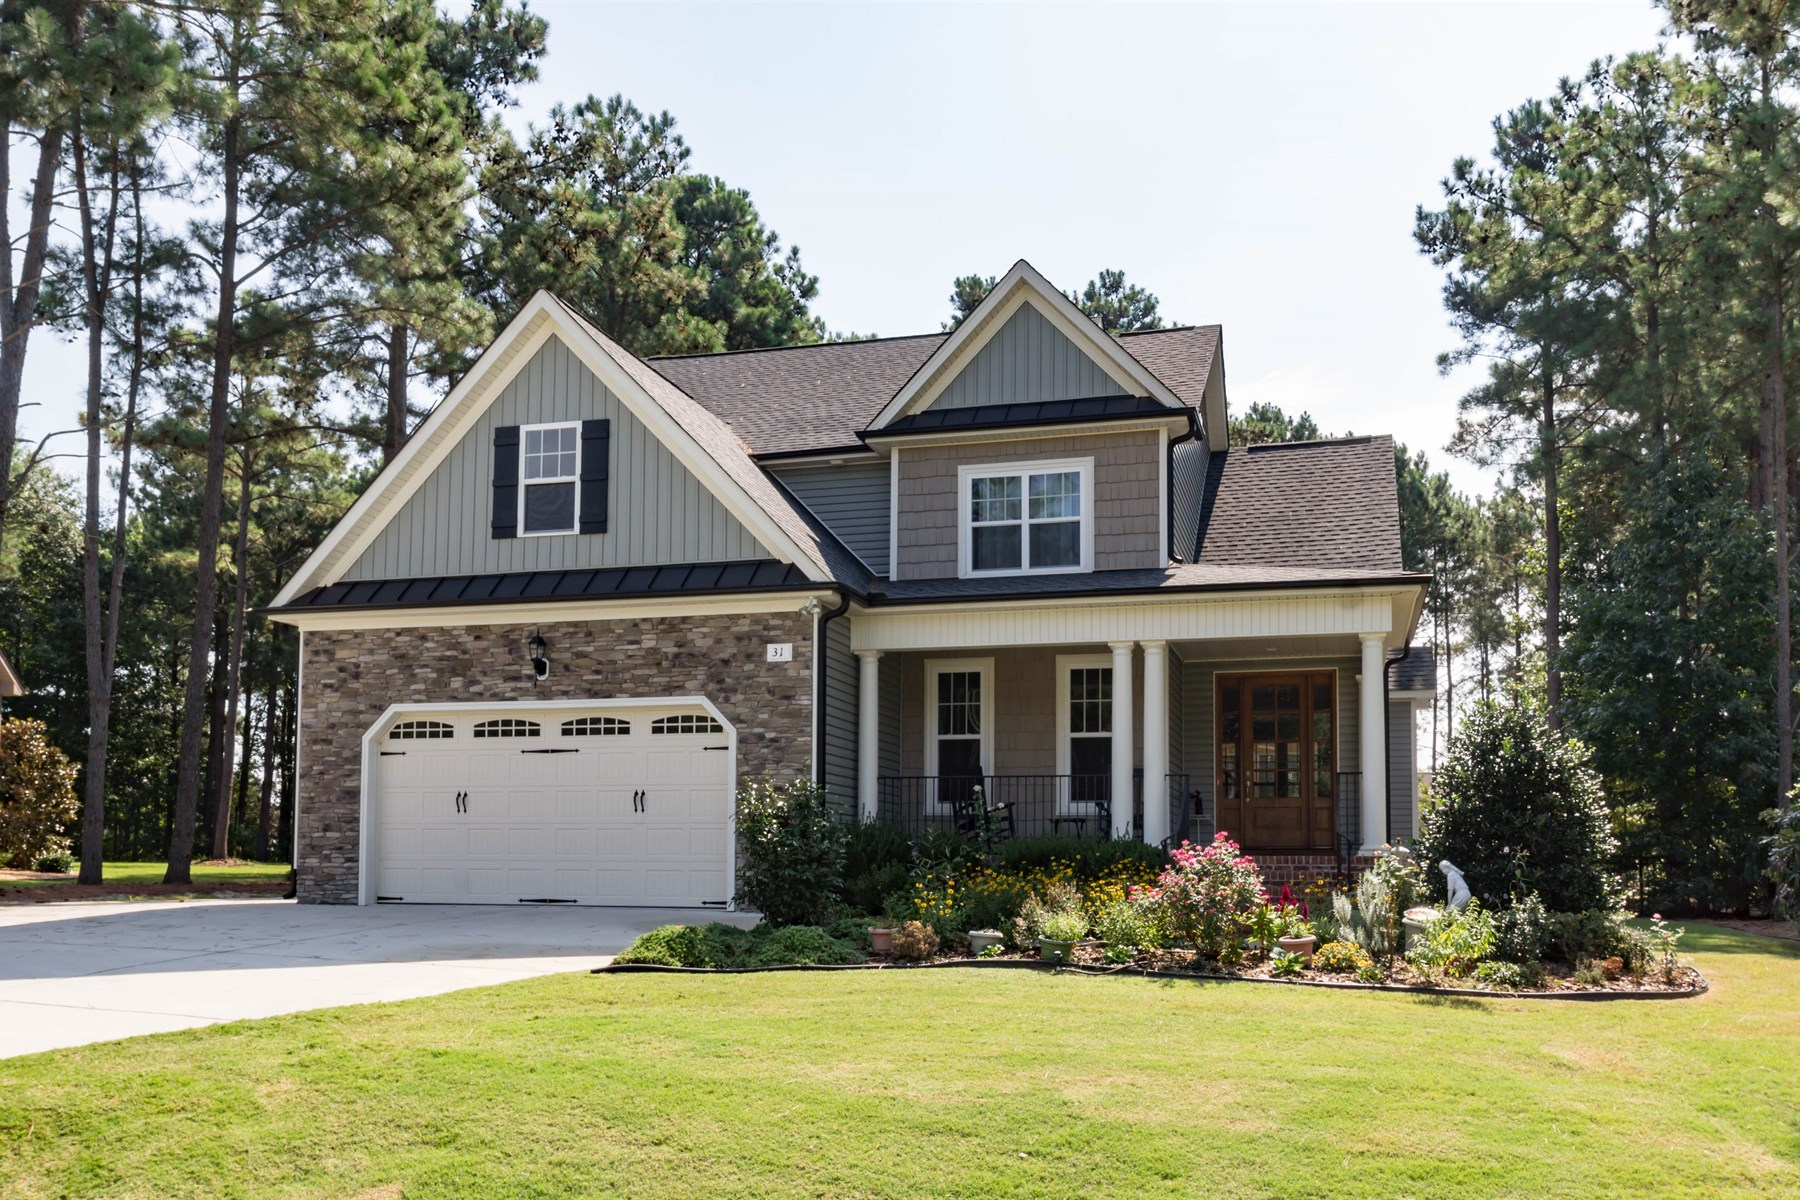 Single Family Home for Sale at Tranquility in Hannah's Creek 31 Cabernet Court Clayton, North Carolina 27520 United StatesIn/Around: Raleigh